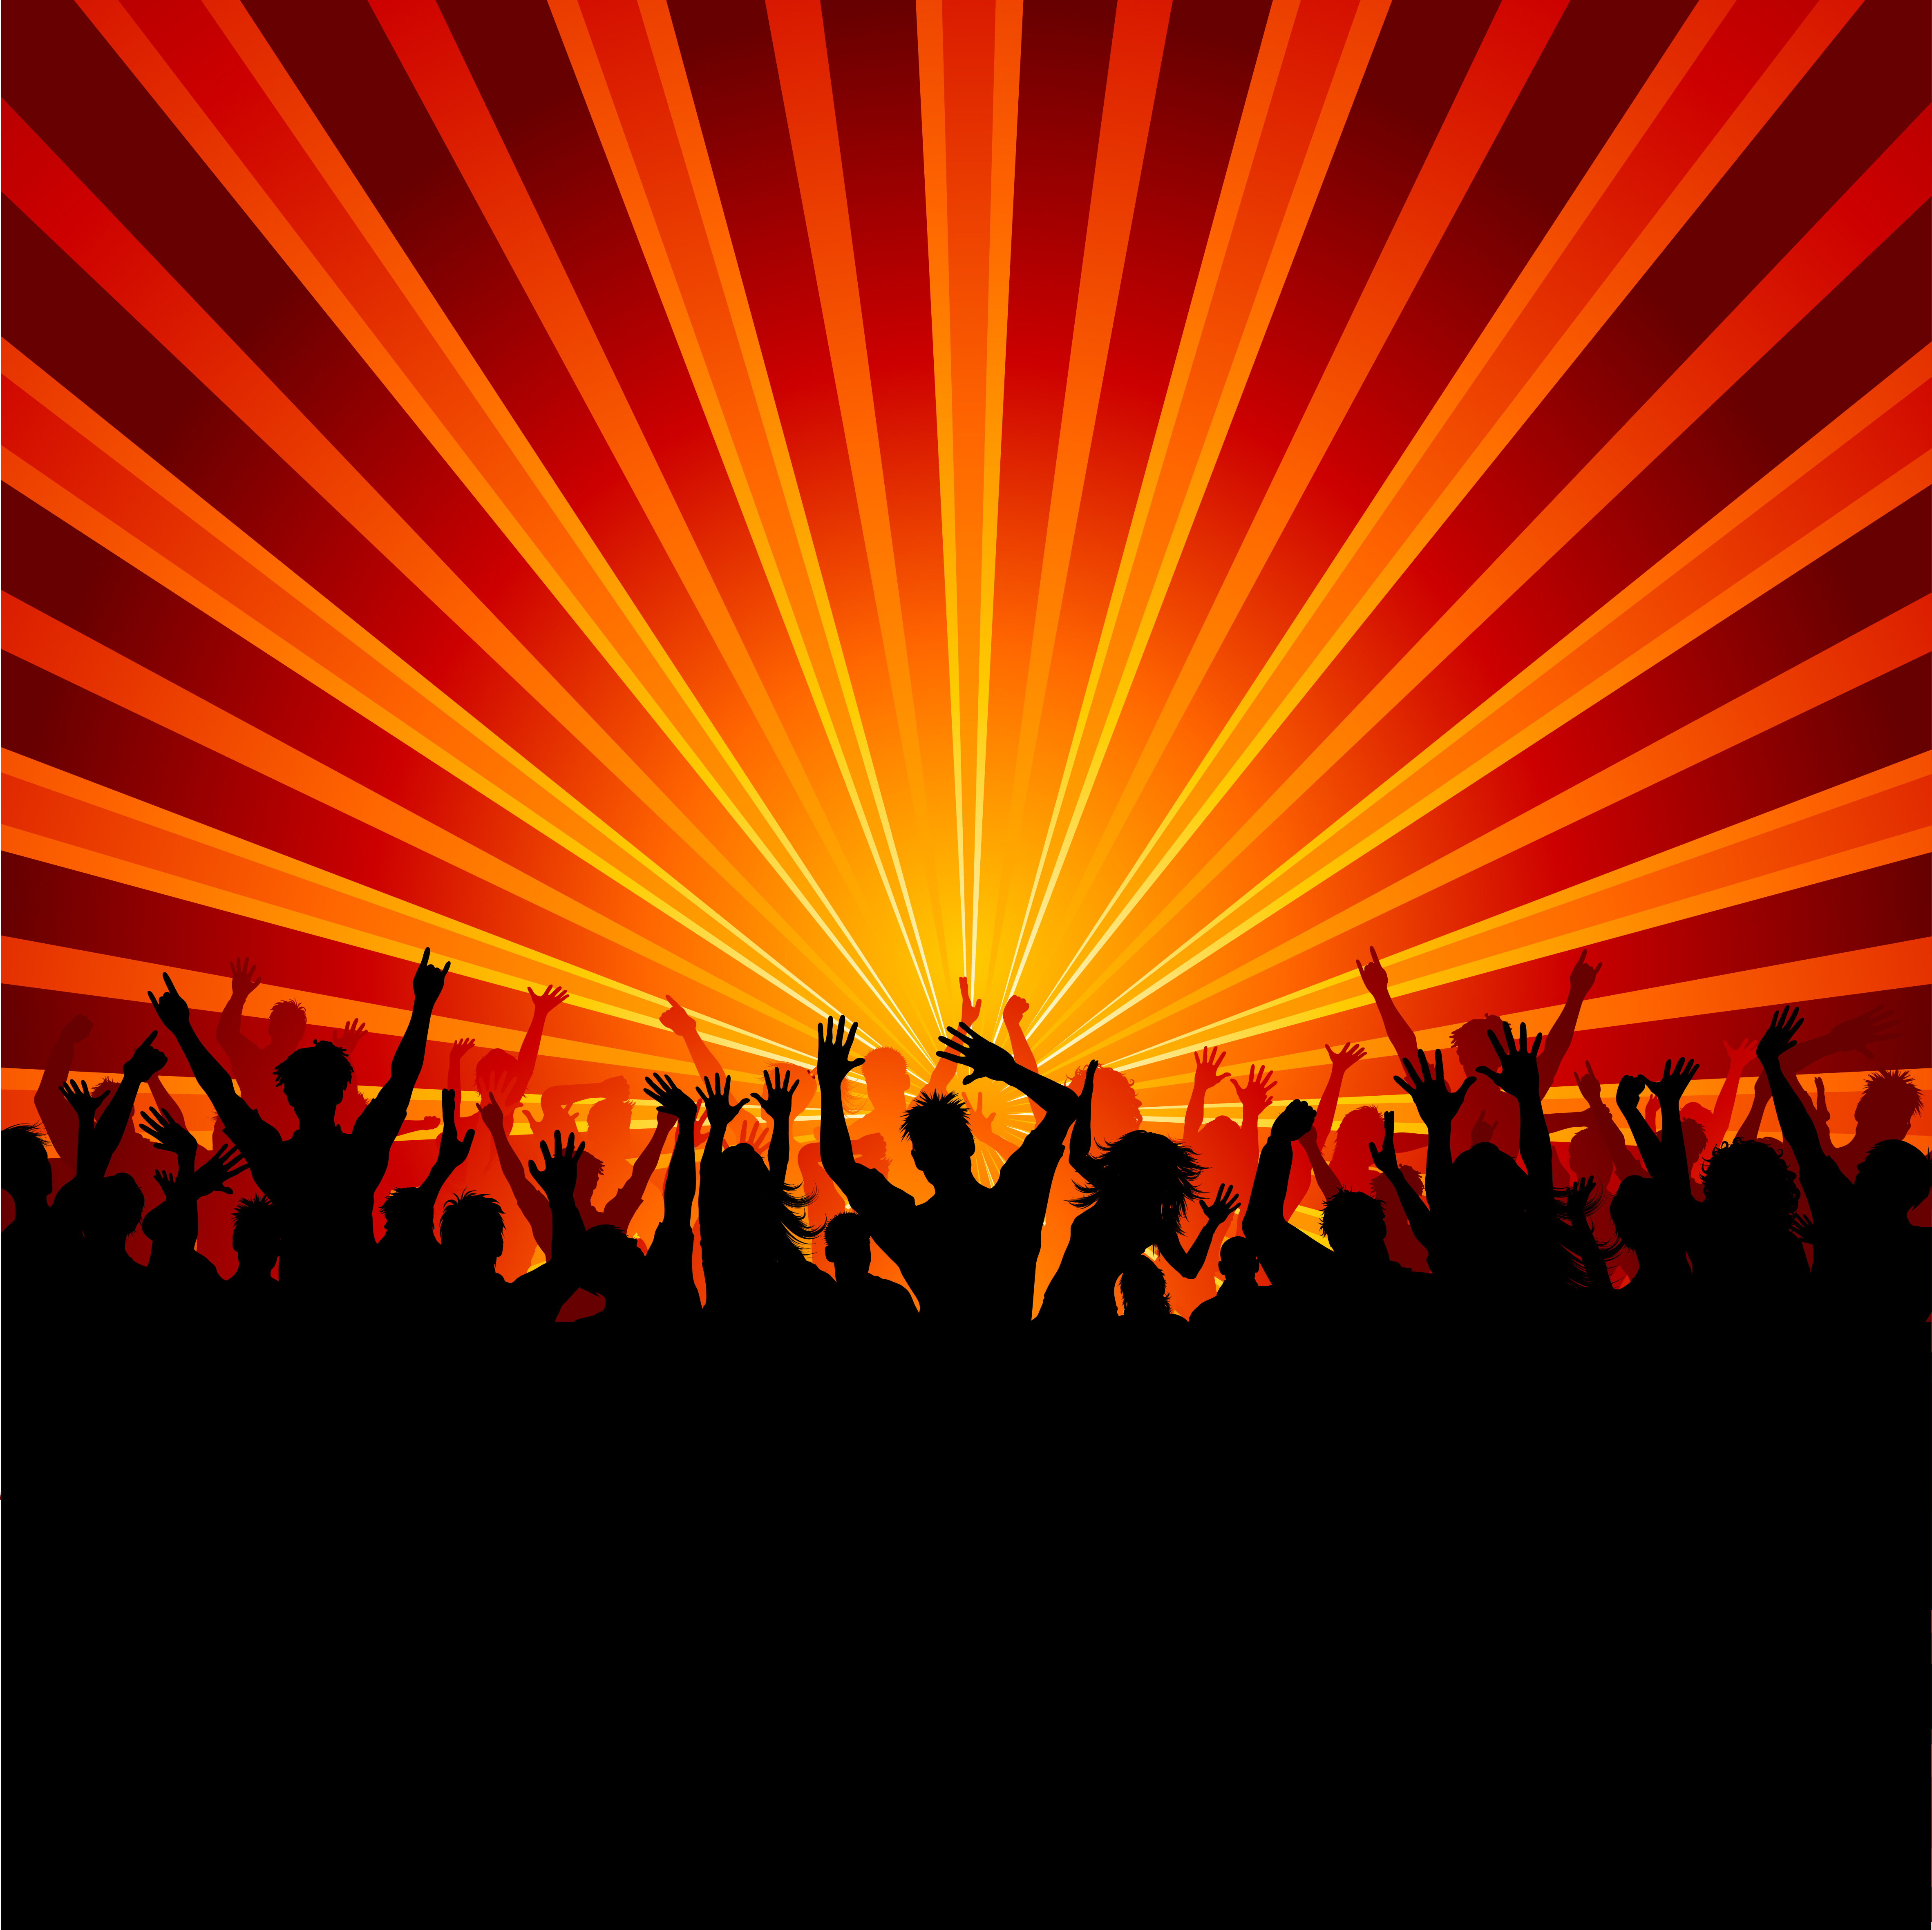 Party Crowd Download Free Vectors Clipart Graphics